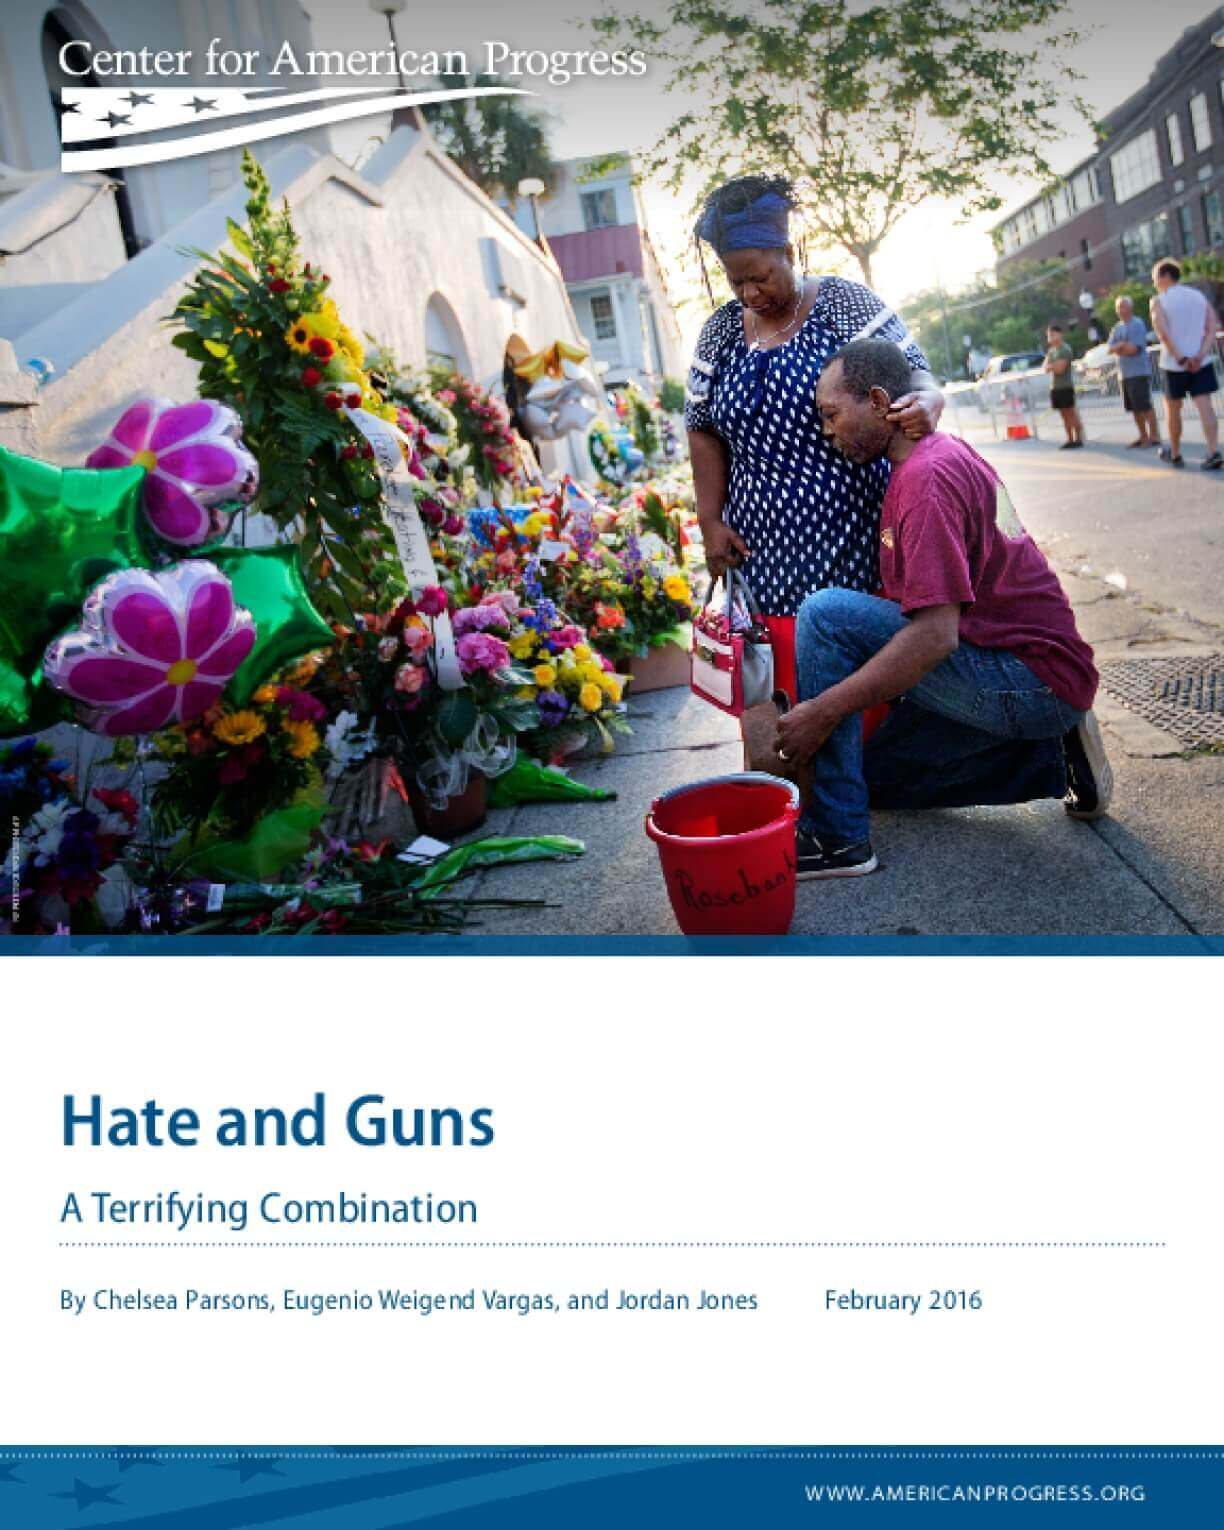 Hate and Guns: A Terrifying Combination